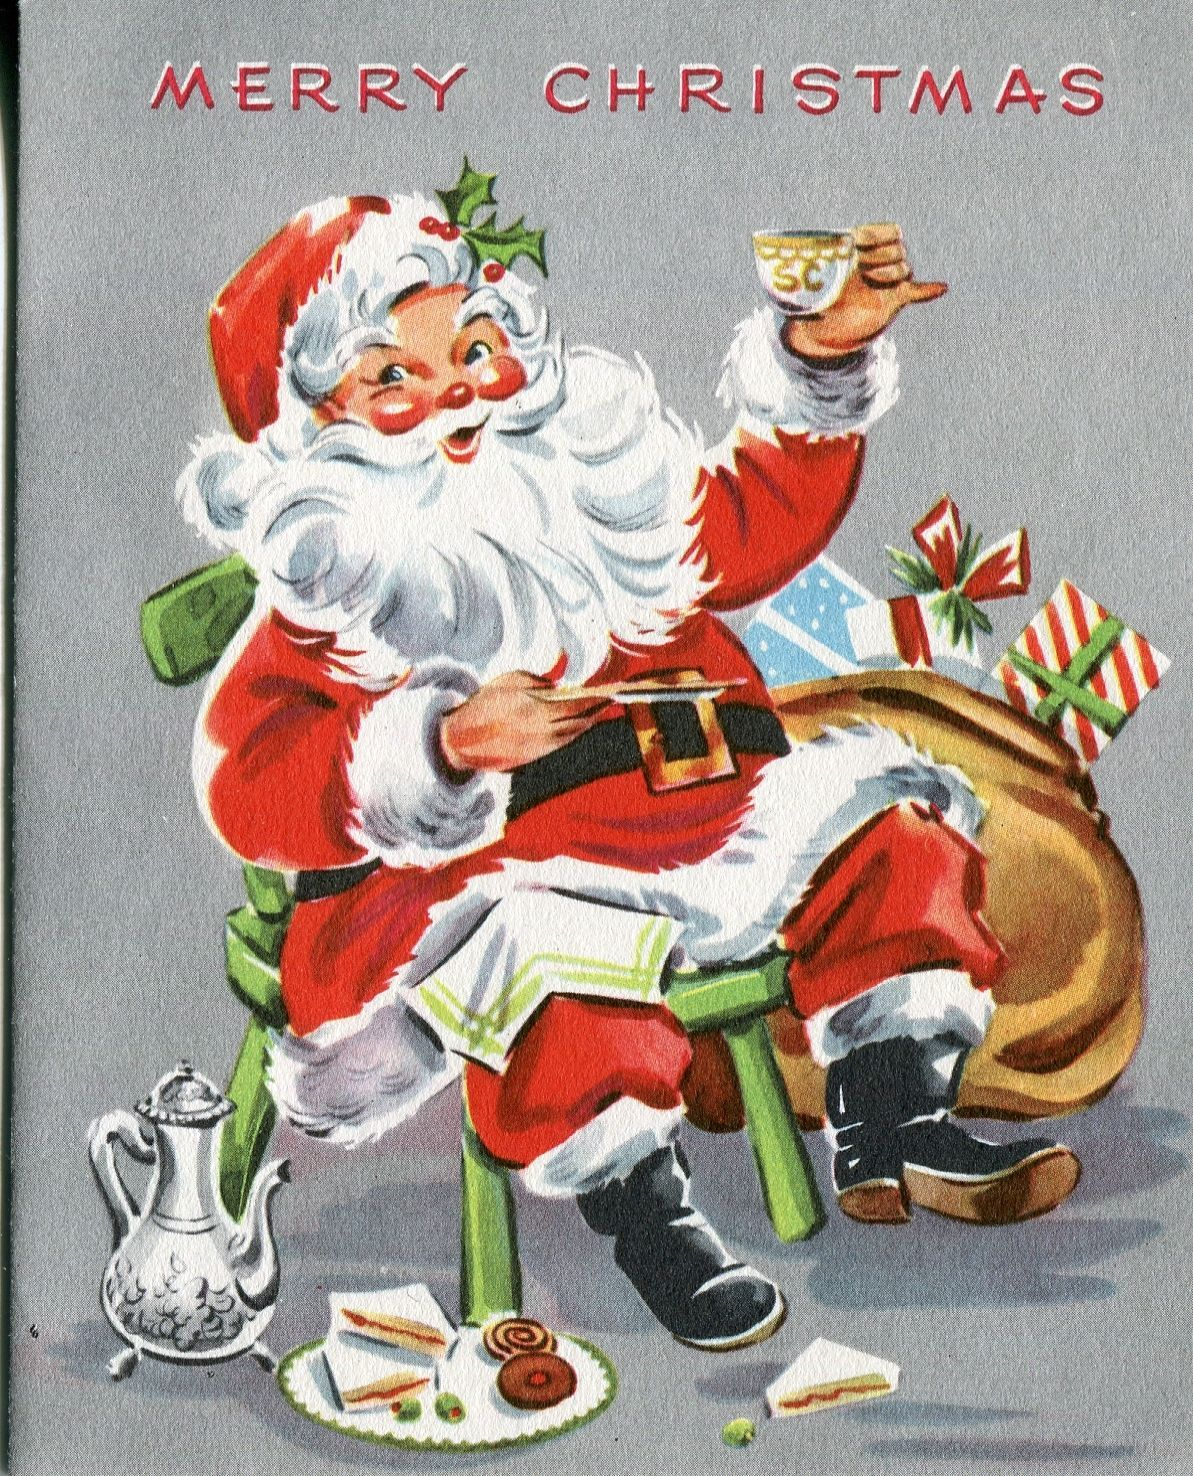 Unused Vintage Artistic Christmas Card Santa Claus Drinking Coffee